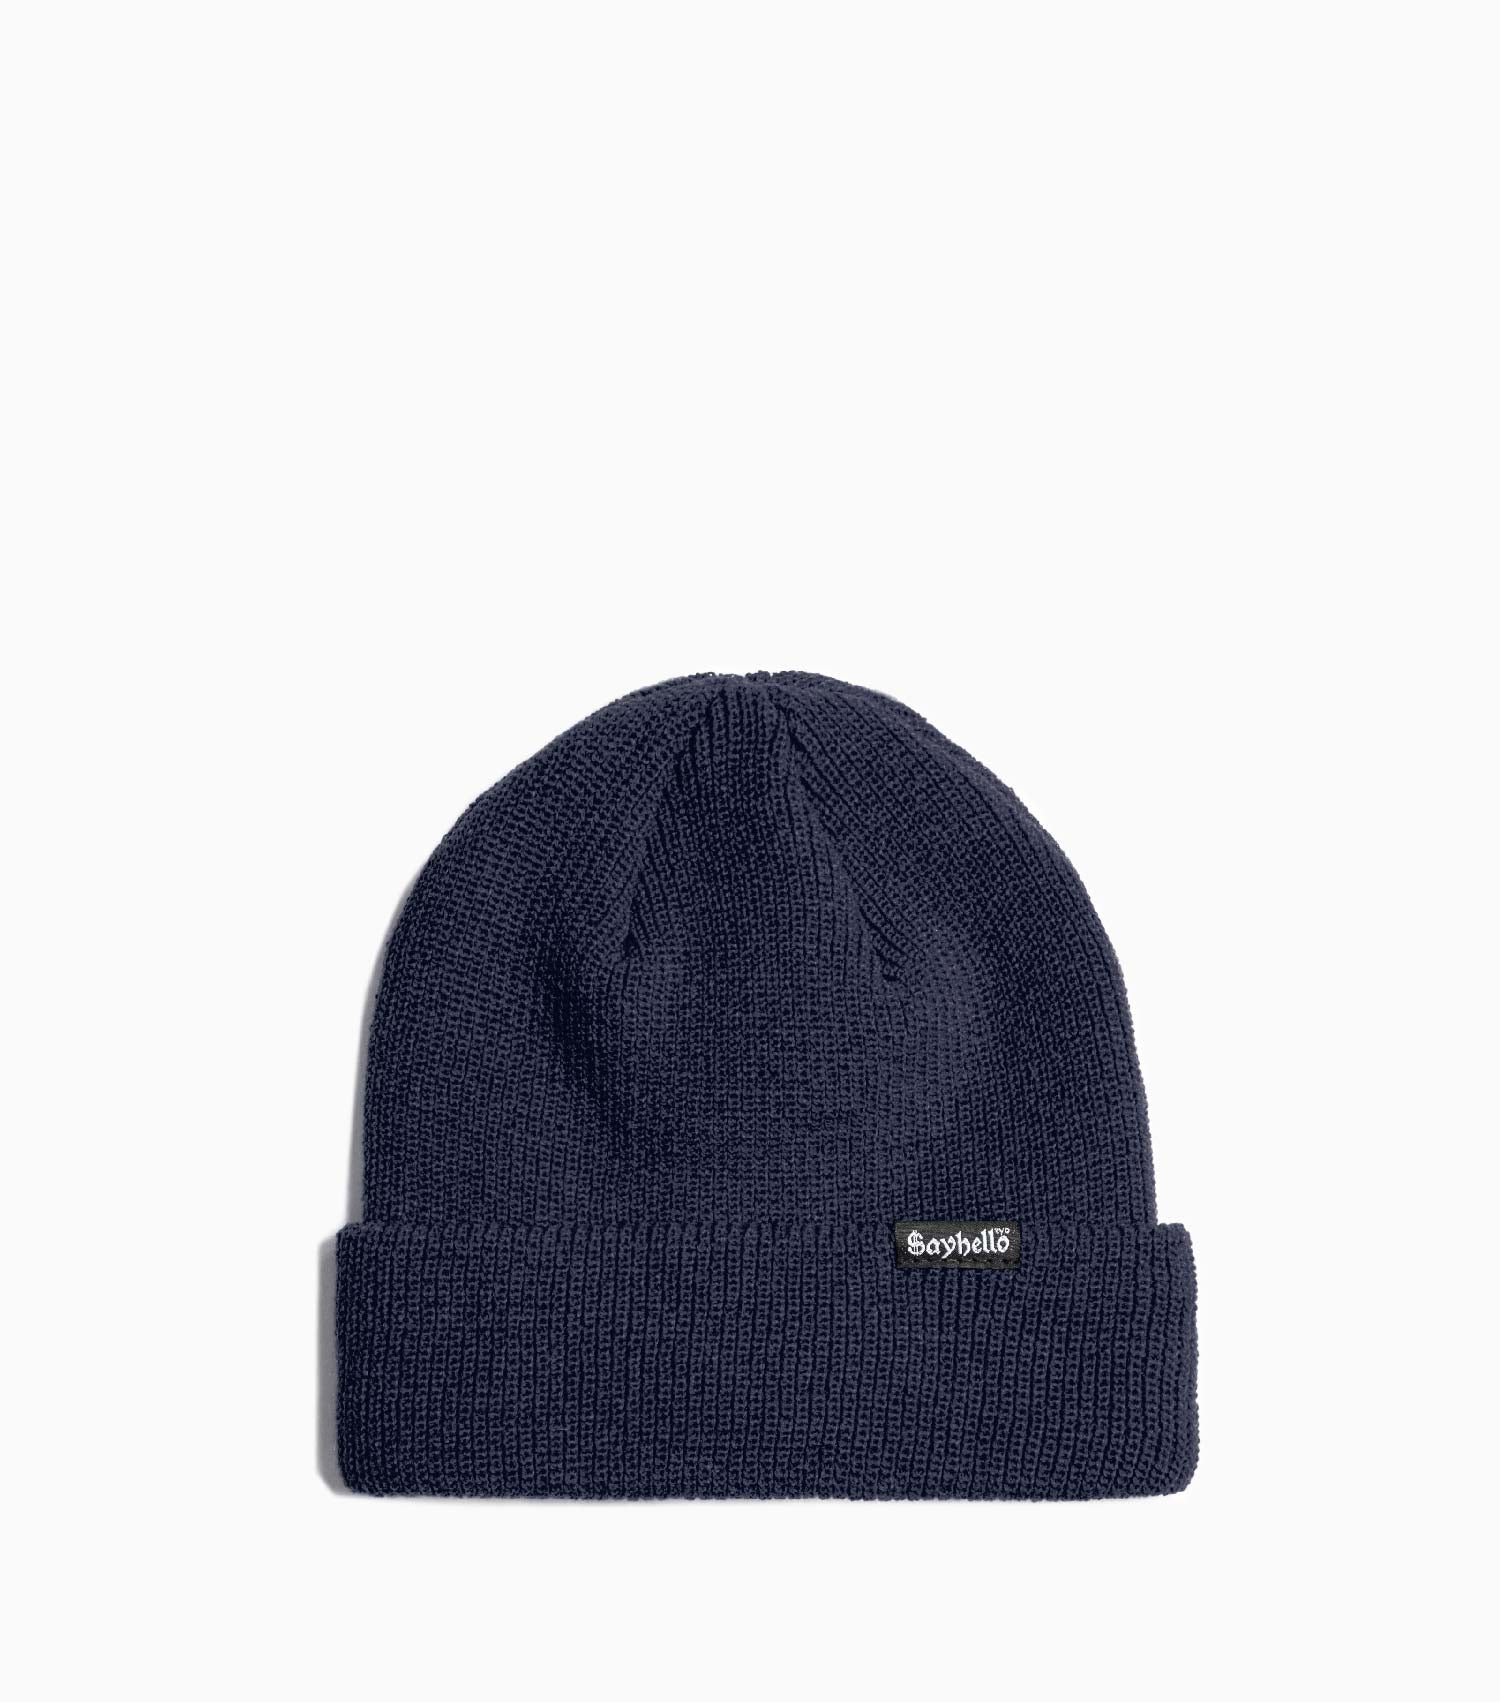 Sayhello Cash Logo Knit Cap Beanie - Night Blue Hat - CARTOCON